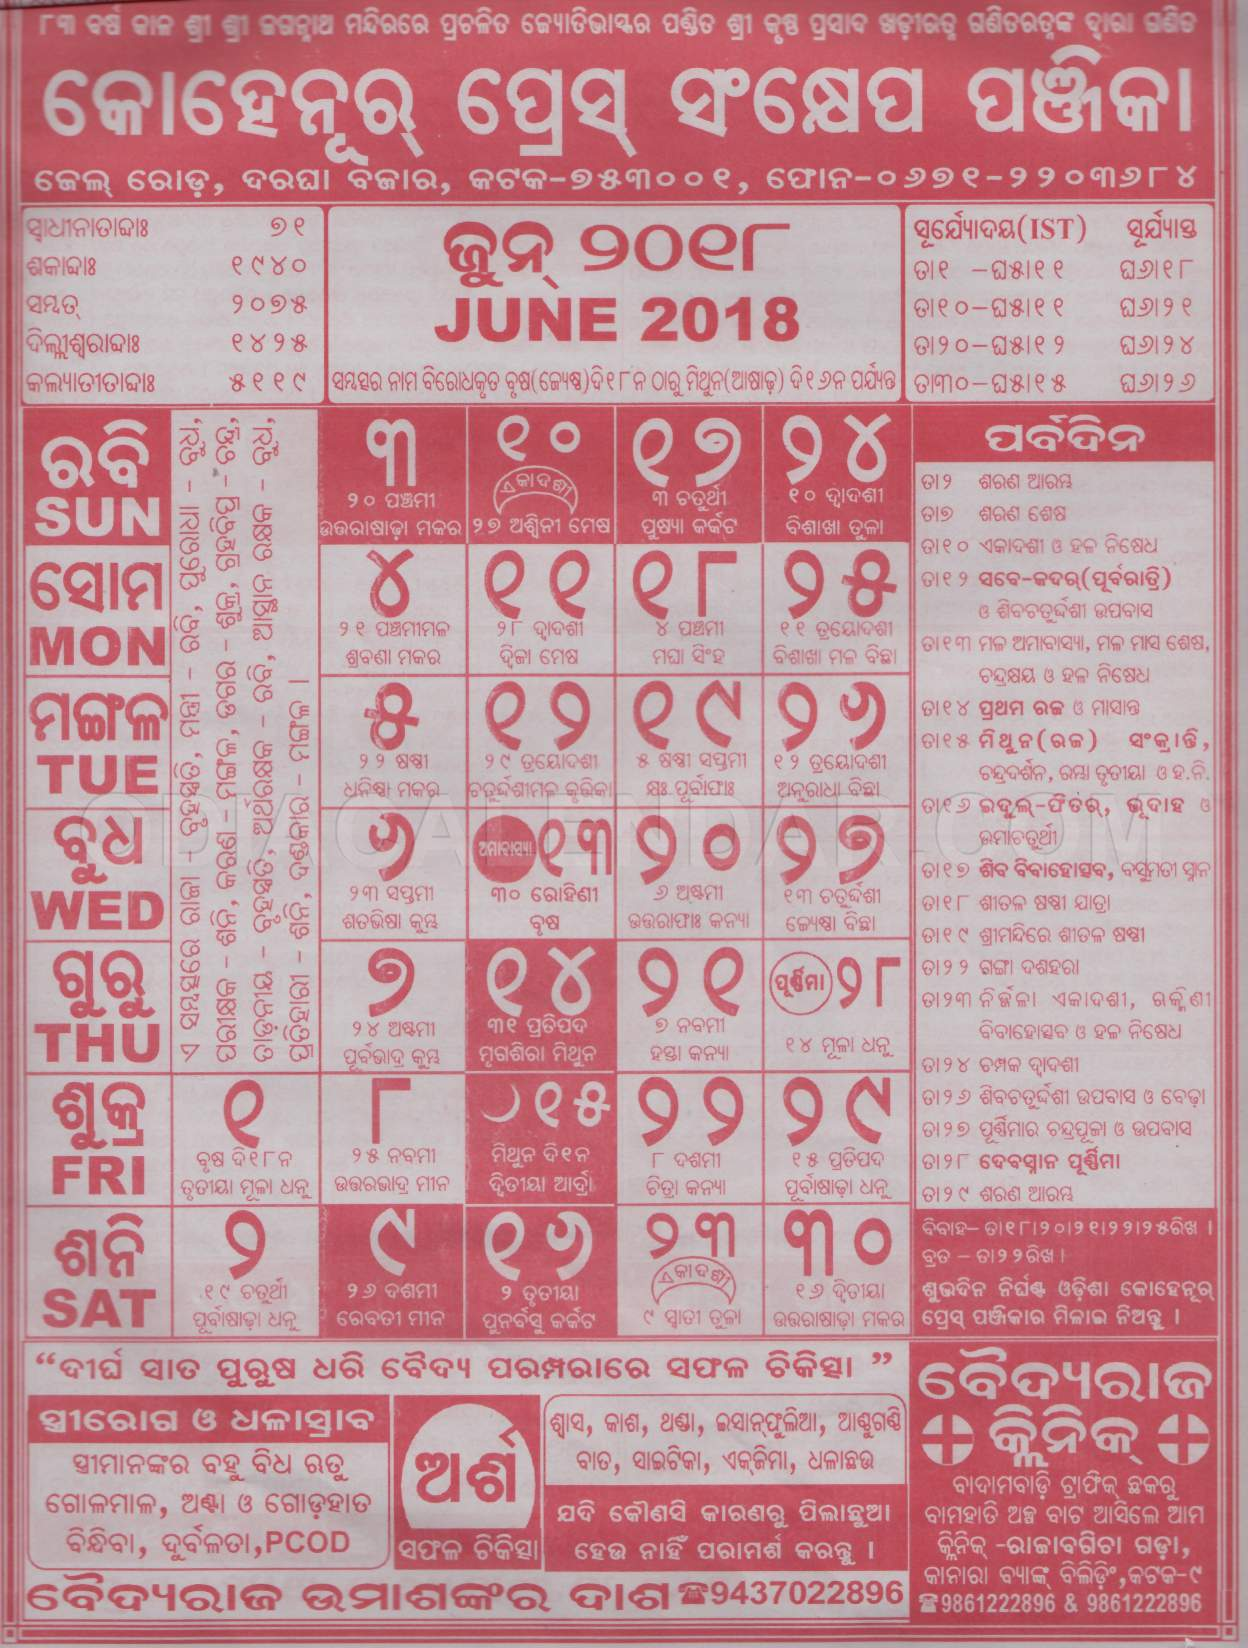 June 2018 Oriya Calendar With Holidays